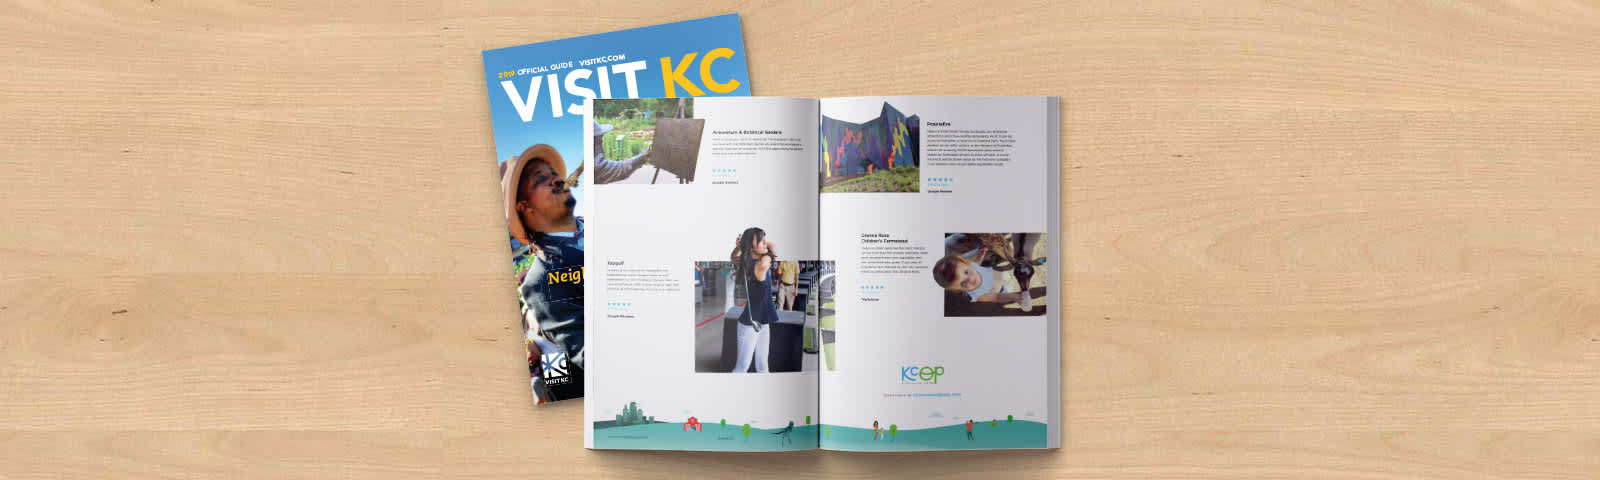 Visit-KC-official-visitors-guide-header